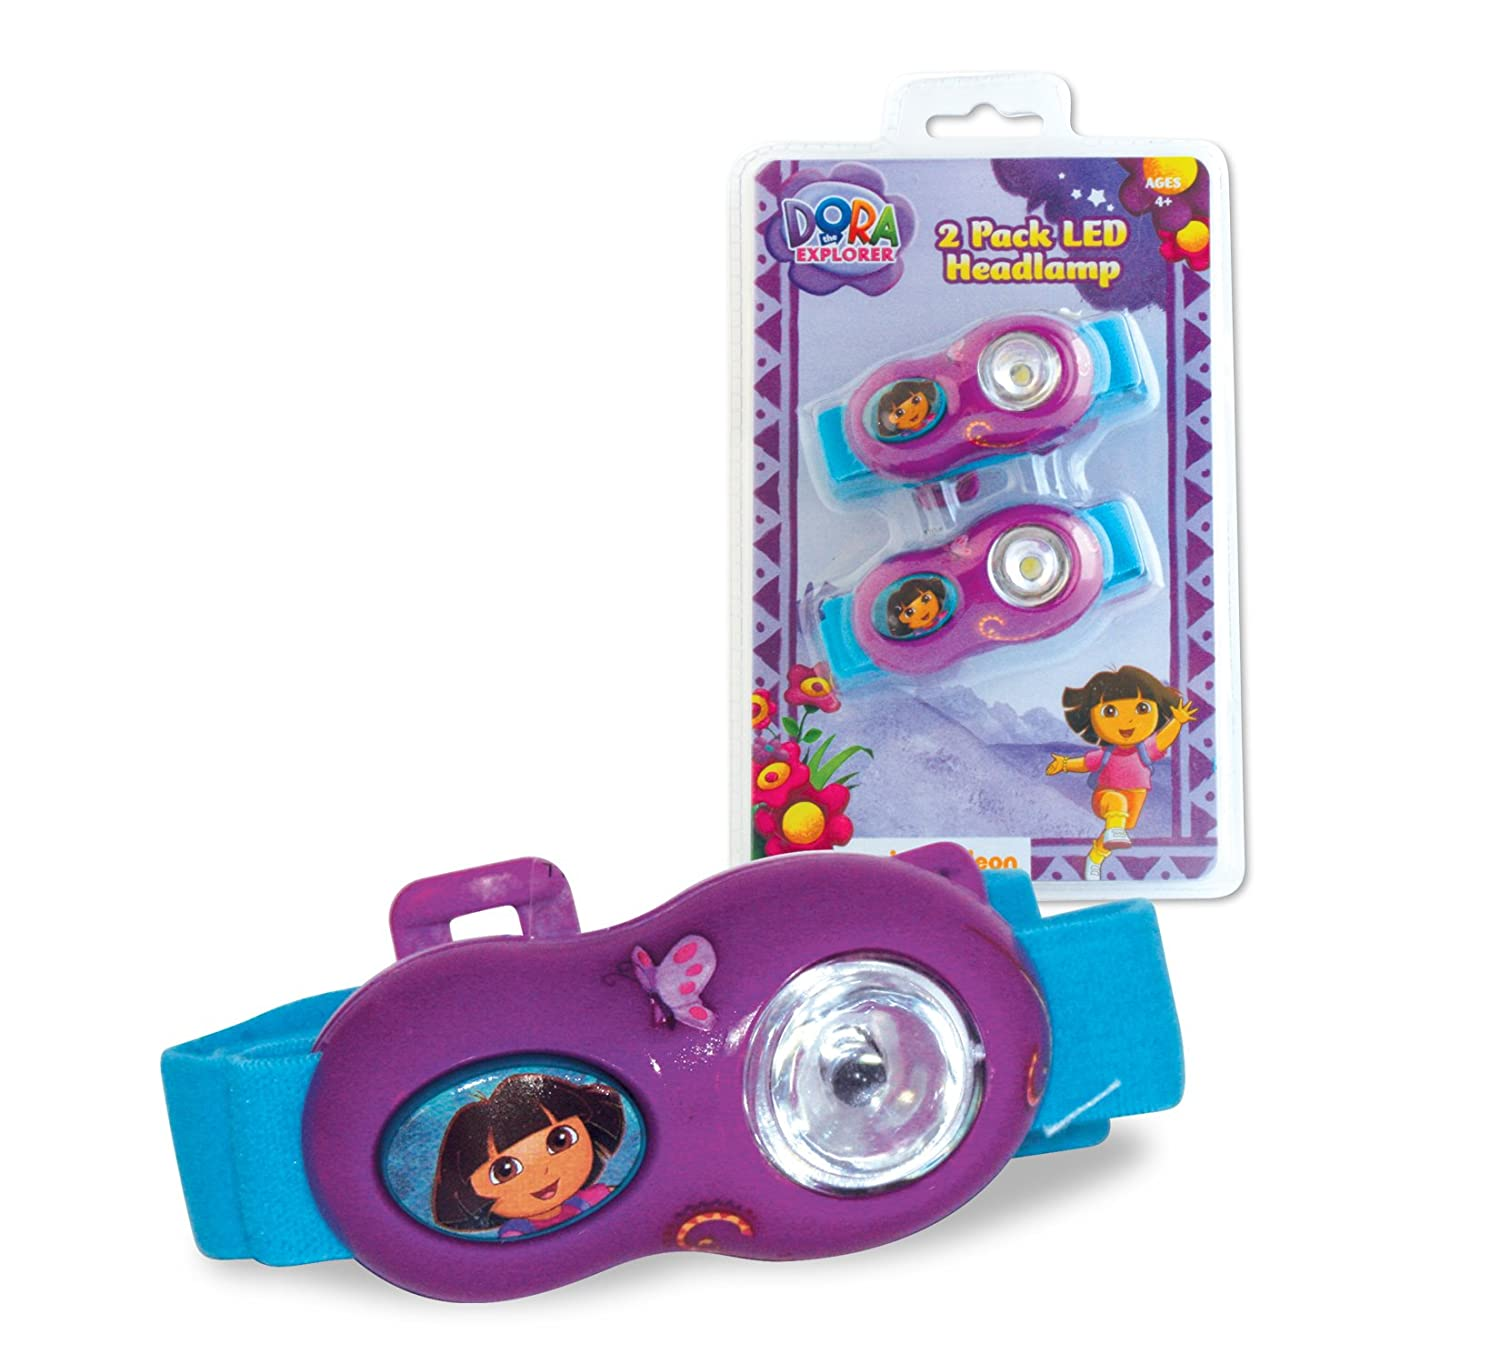 Dora The Explorer Led Flashlight Headlamp 2 Pack Toys Exciting Scout Crafts 1 Or Games